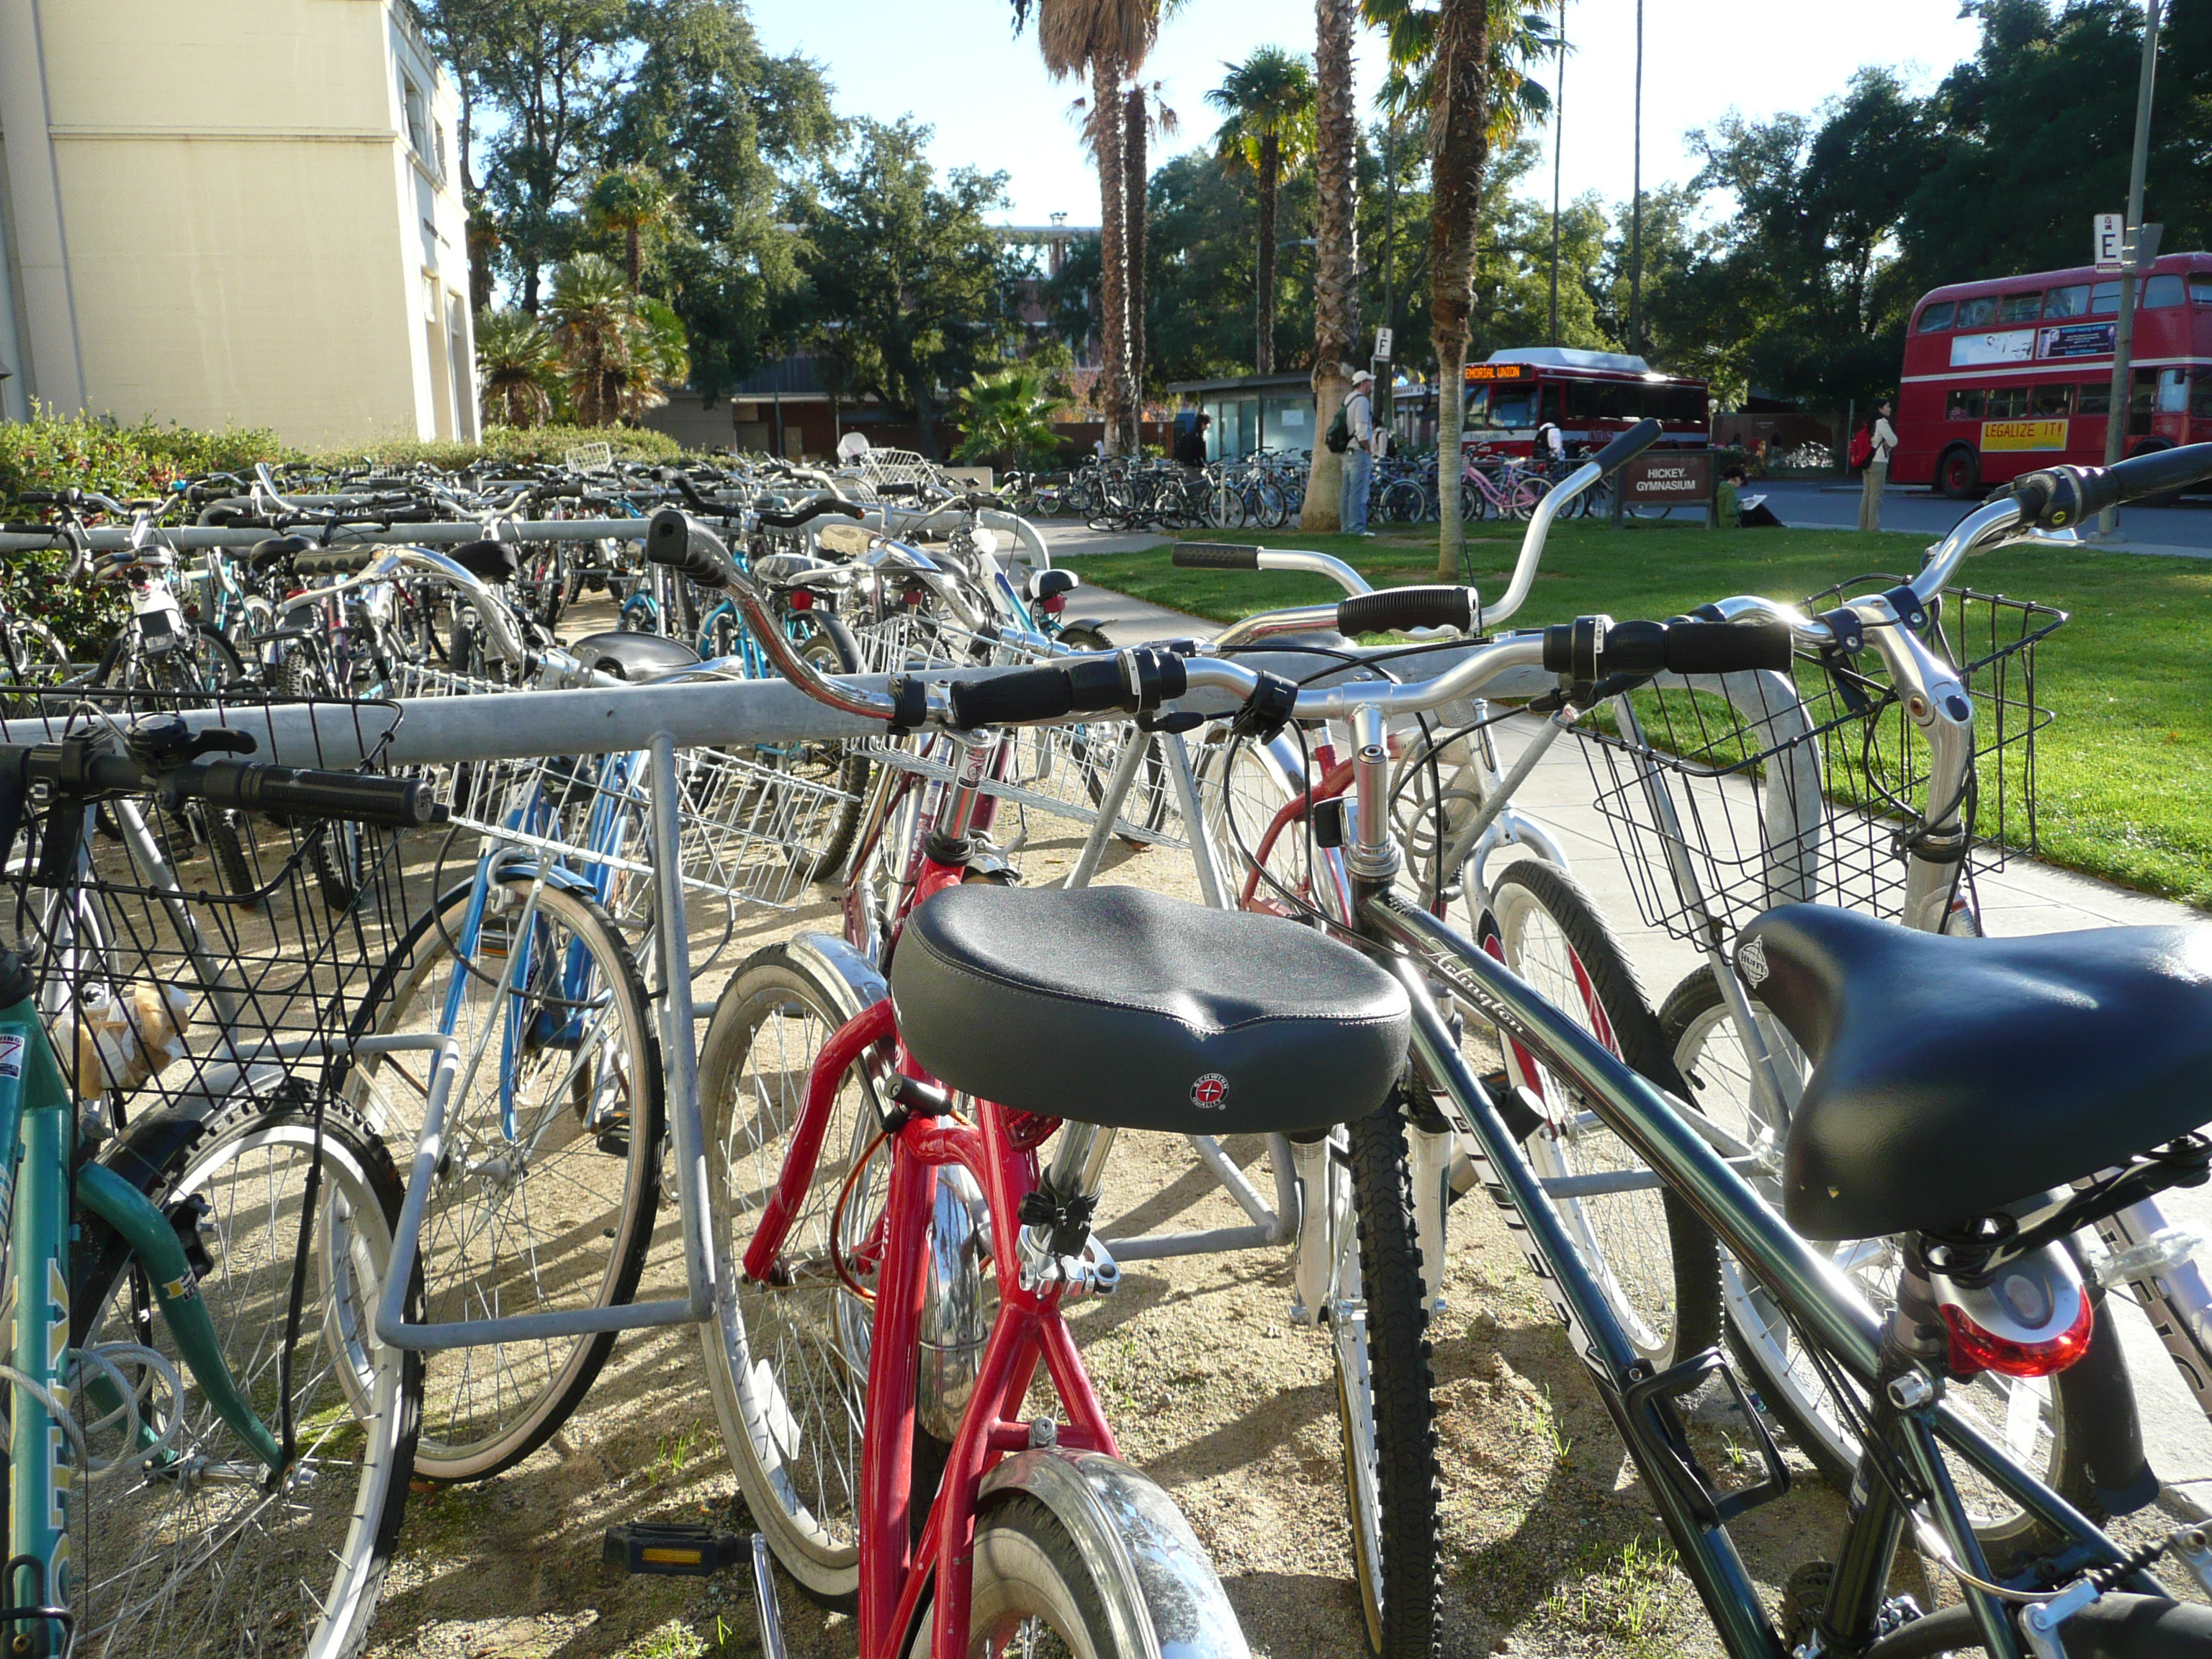 File:Bicycles, UC Davis.jpg - Wikimedia Commons Uc Davis